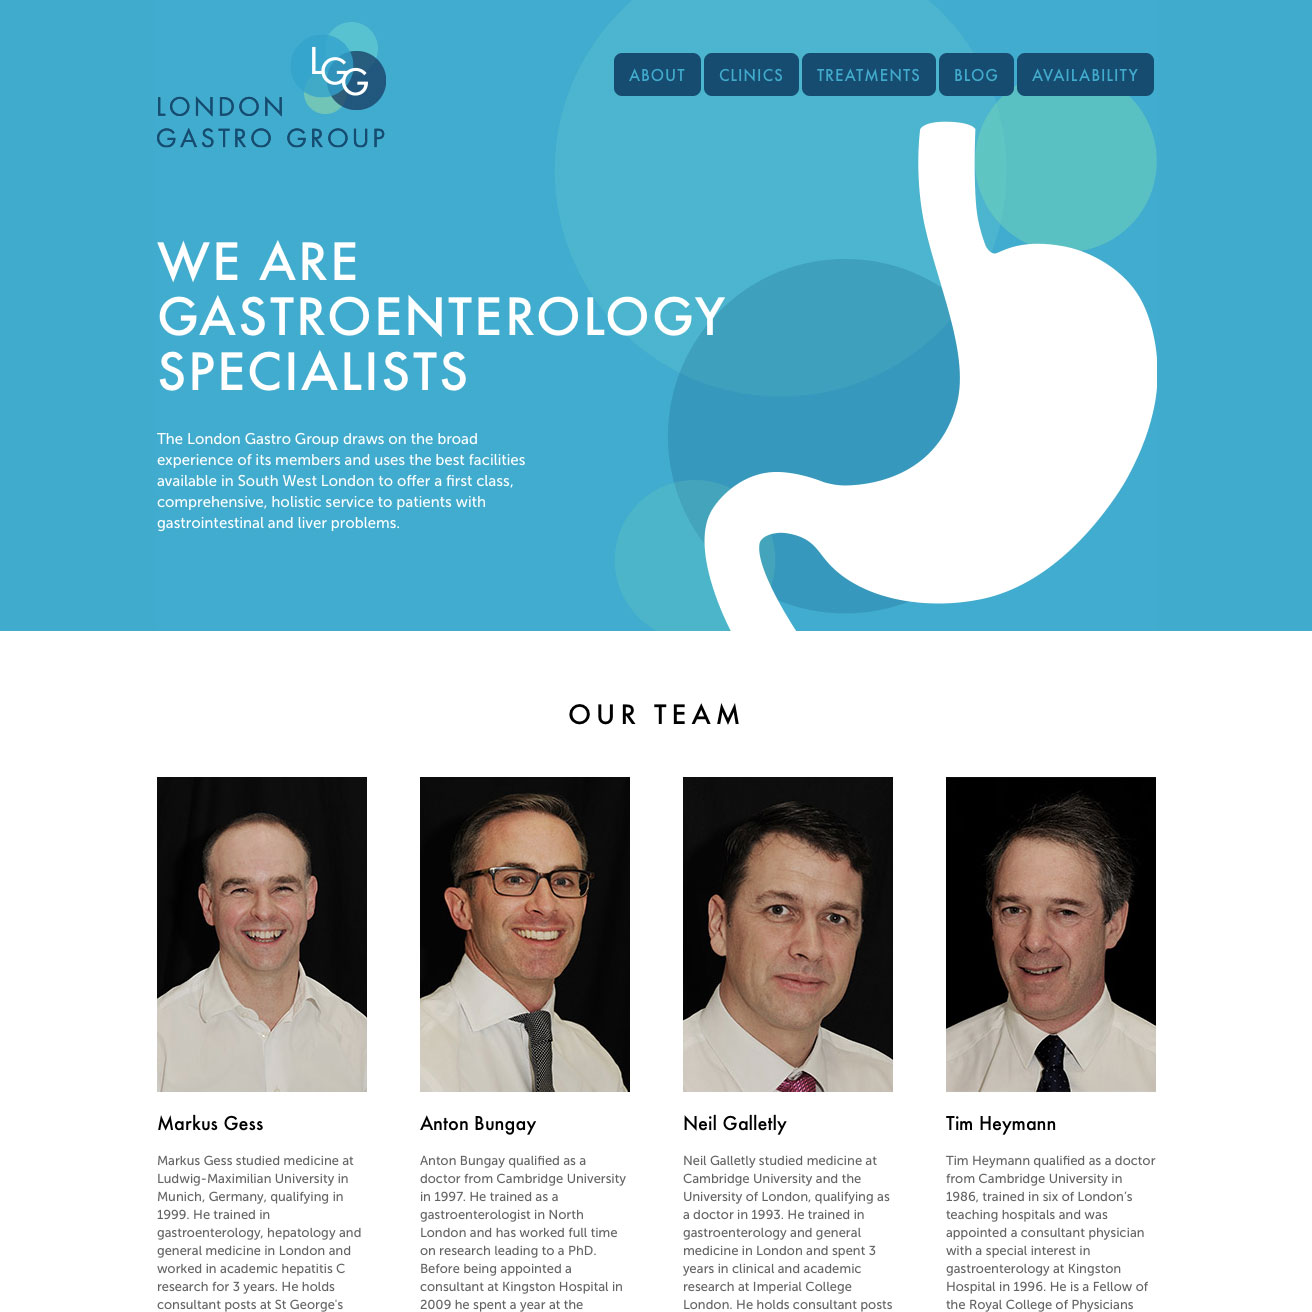 London Gastro Group image